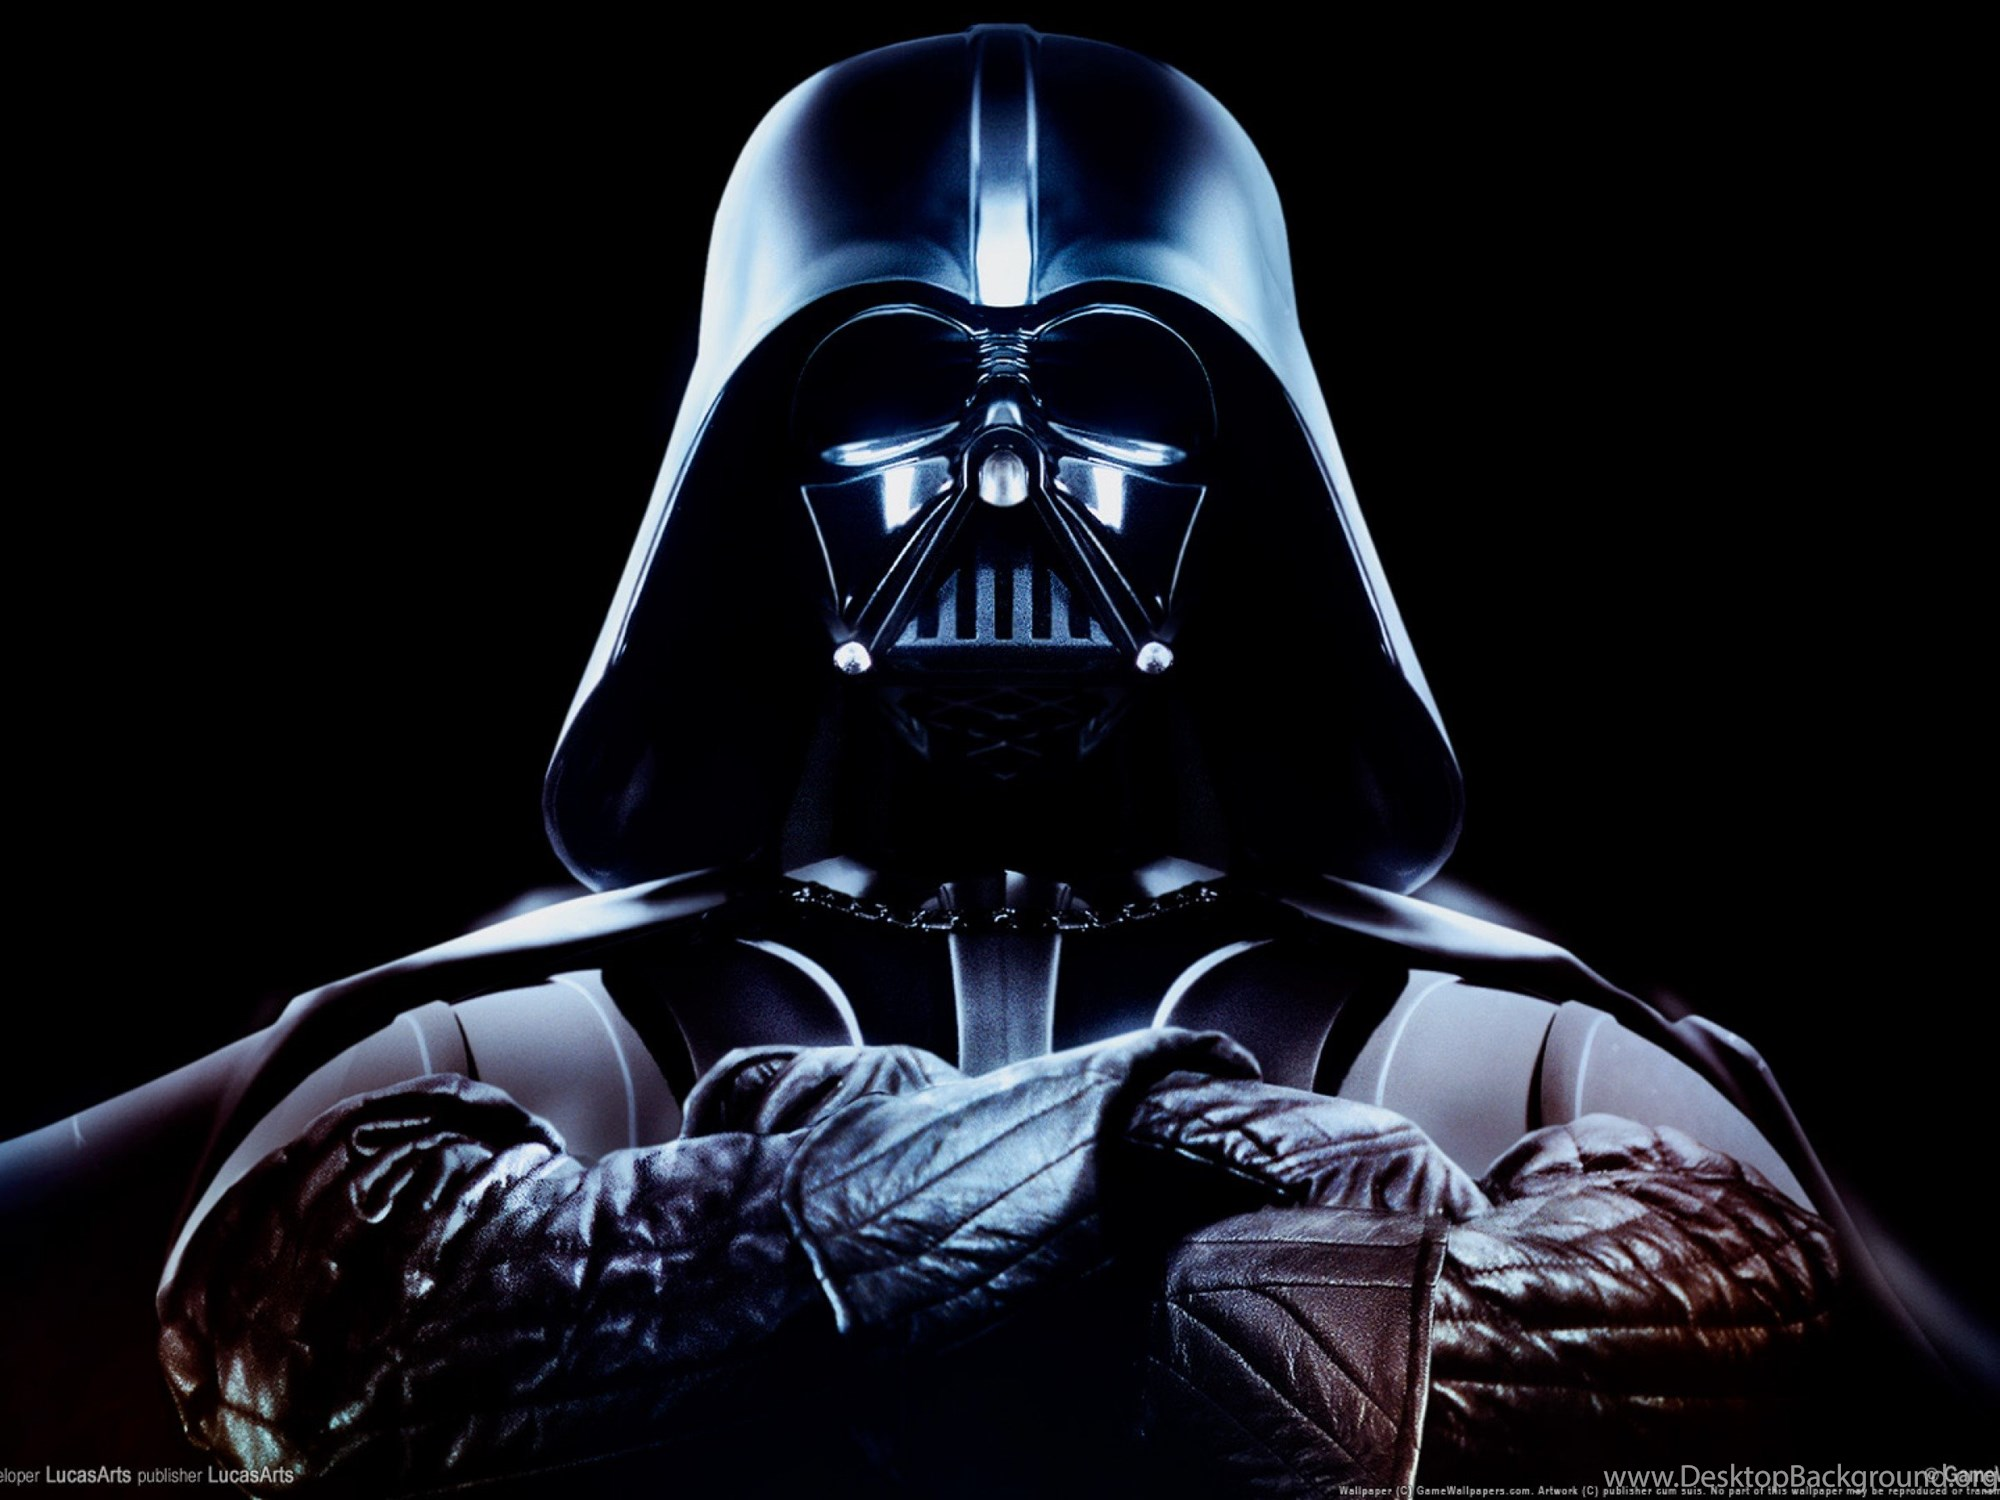 Wallpapers Star Wars Video Game Wallpapers Black Backgrounds Star Wars Xbox Gamerpics 2938881 Hd Wallpaper Backgrounds Download